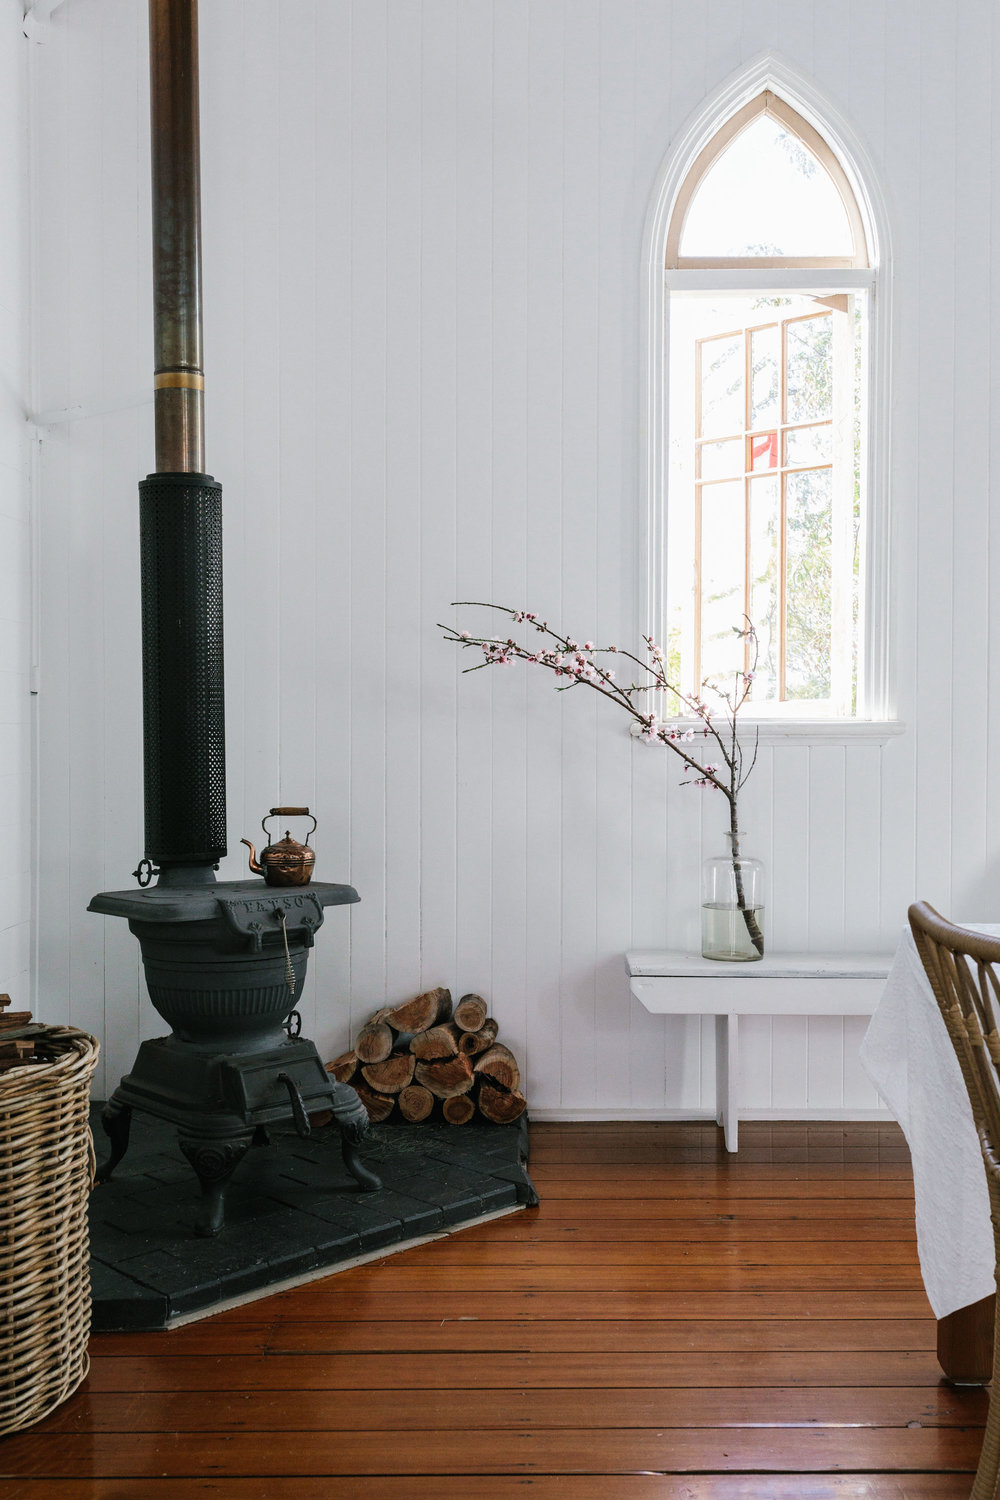 Marnie Hawson, Melbourne interior photographer for Cheryl Carr, Boonah and Country Style magazine